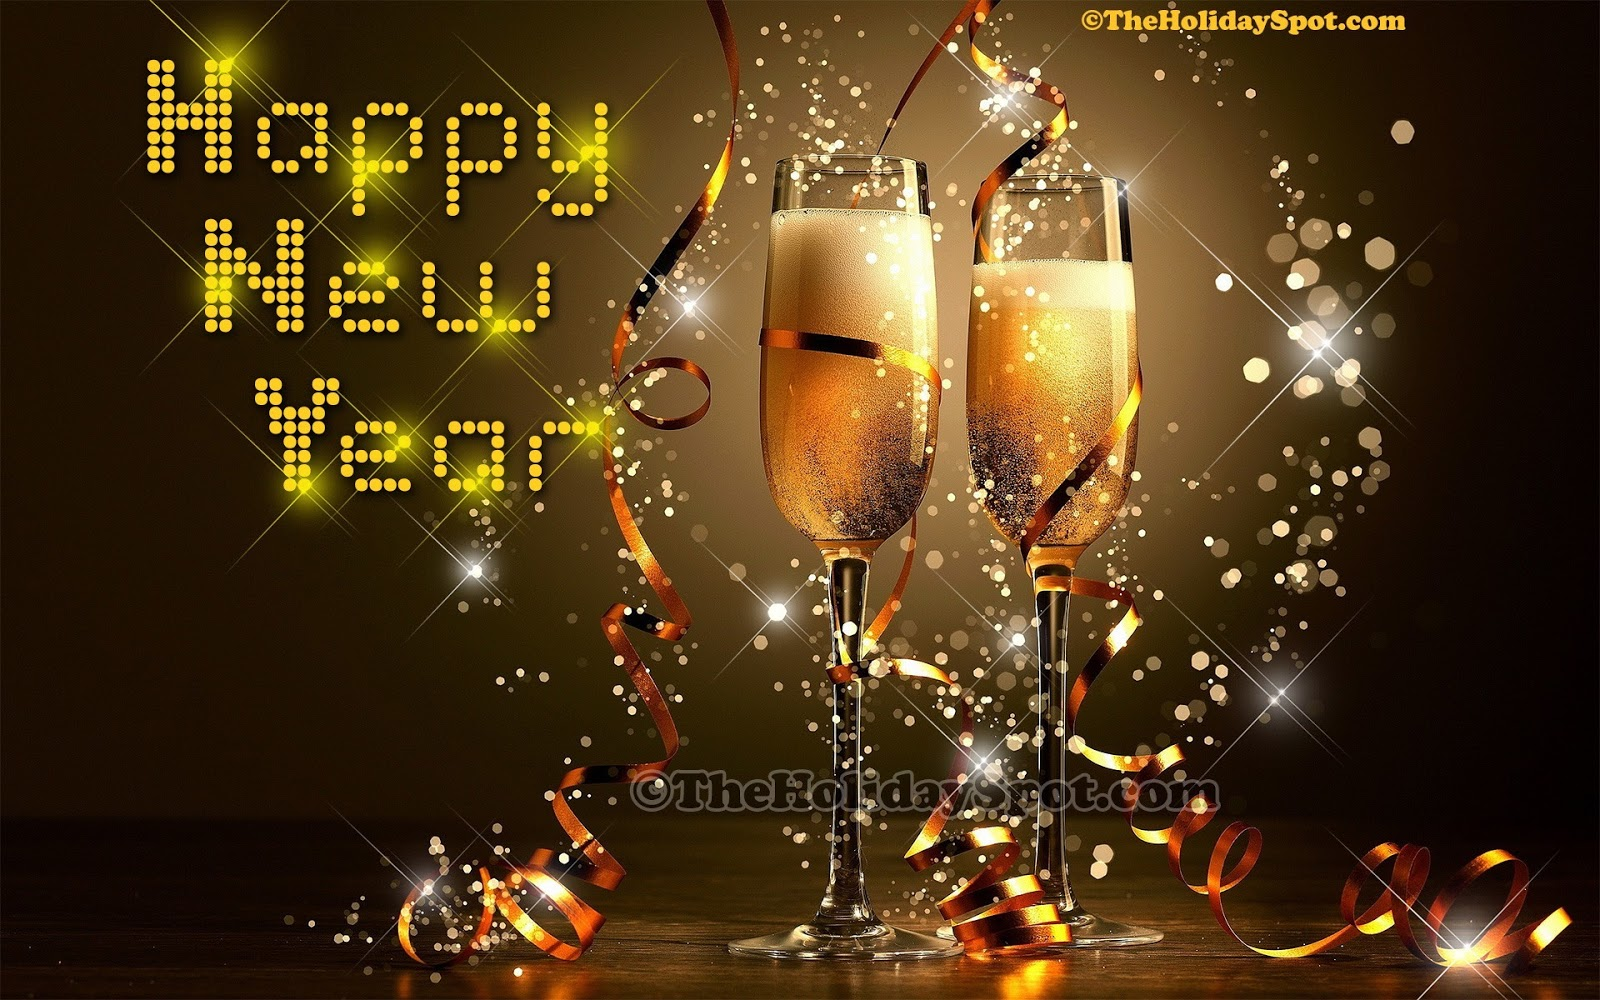 Wallpaper download new year 2016 - Happy New Year Wallpaper Download